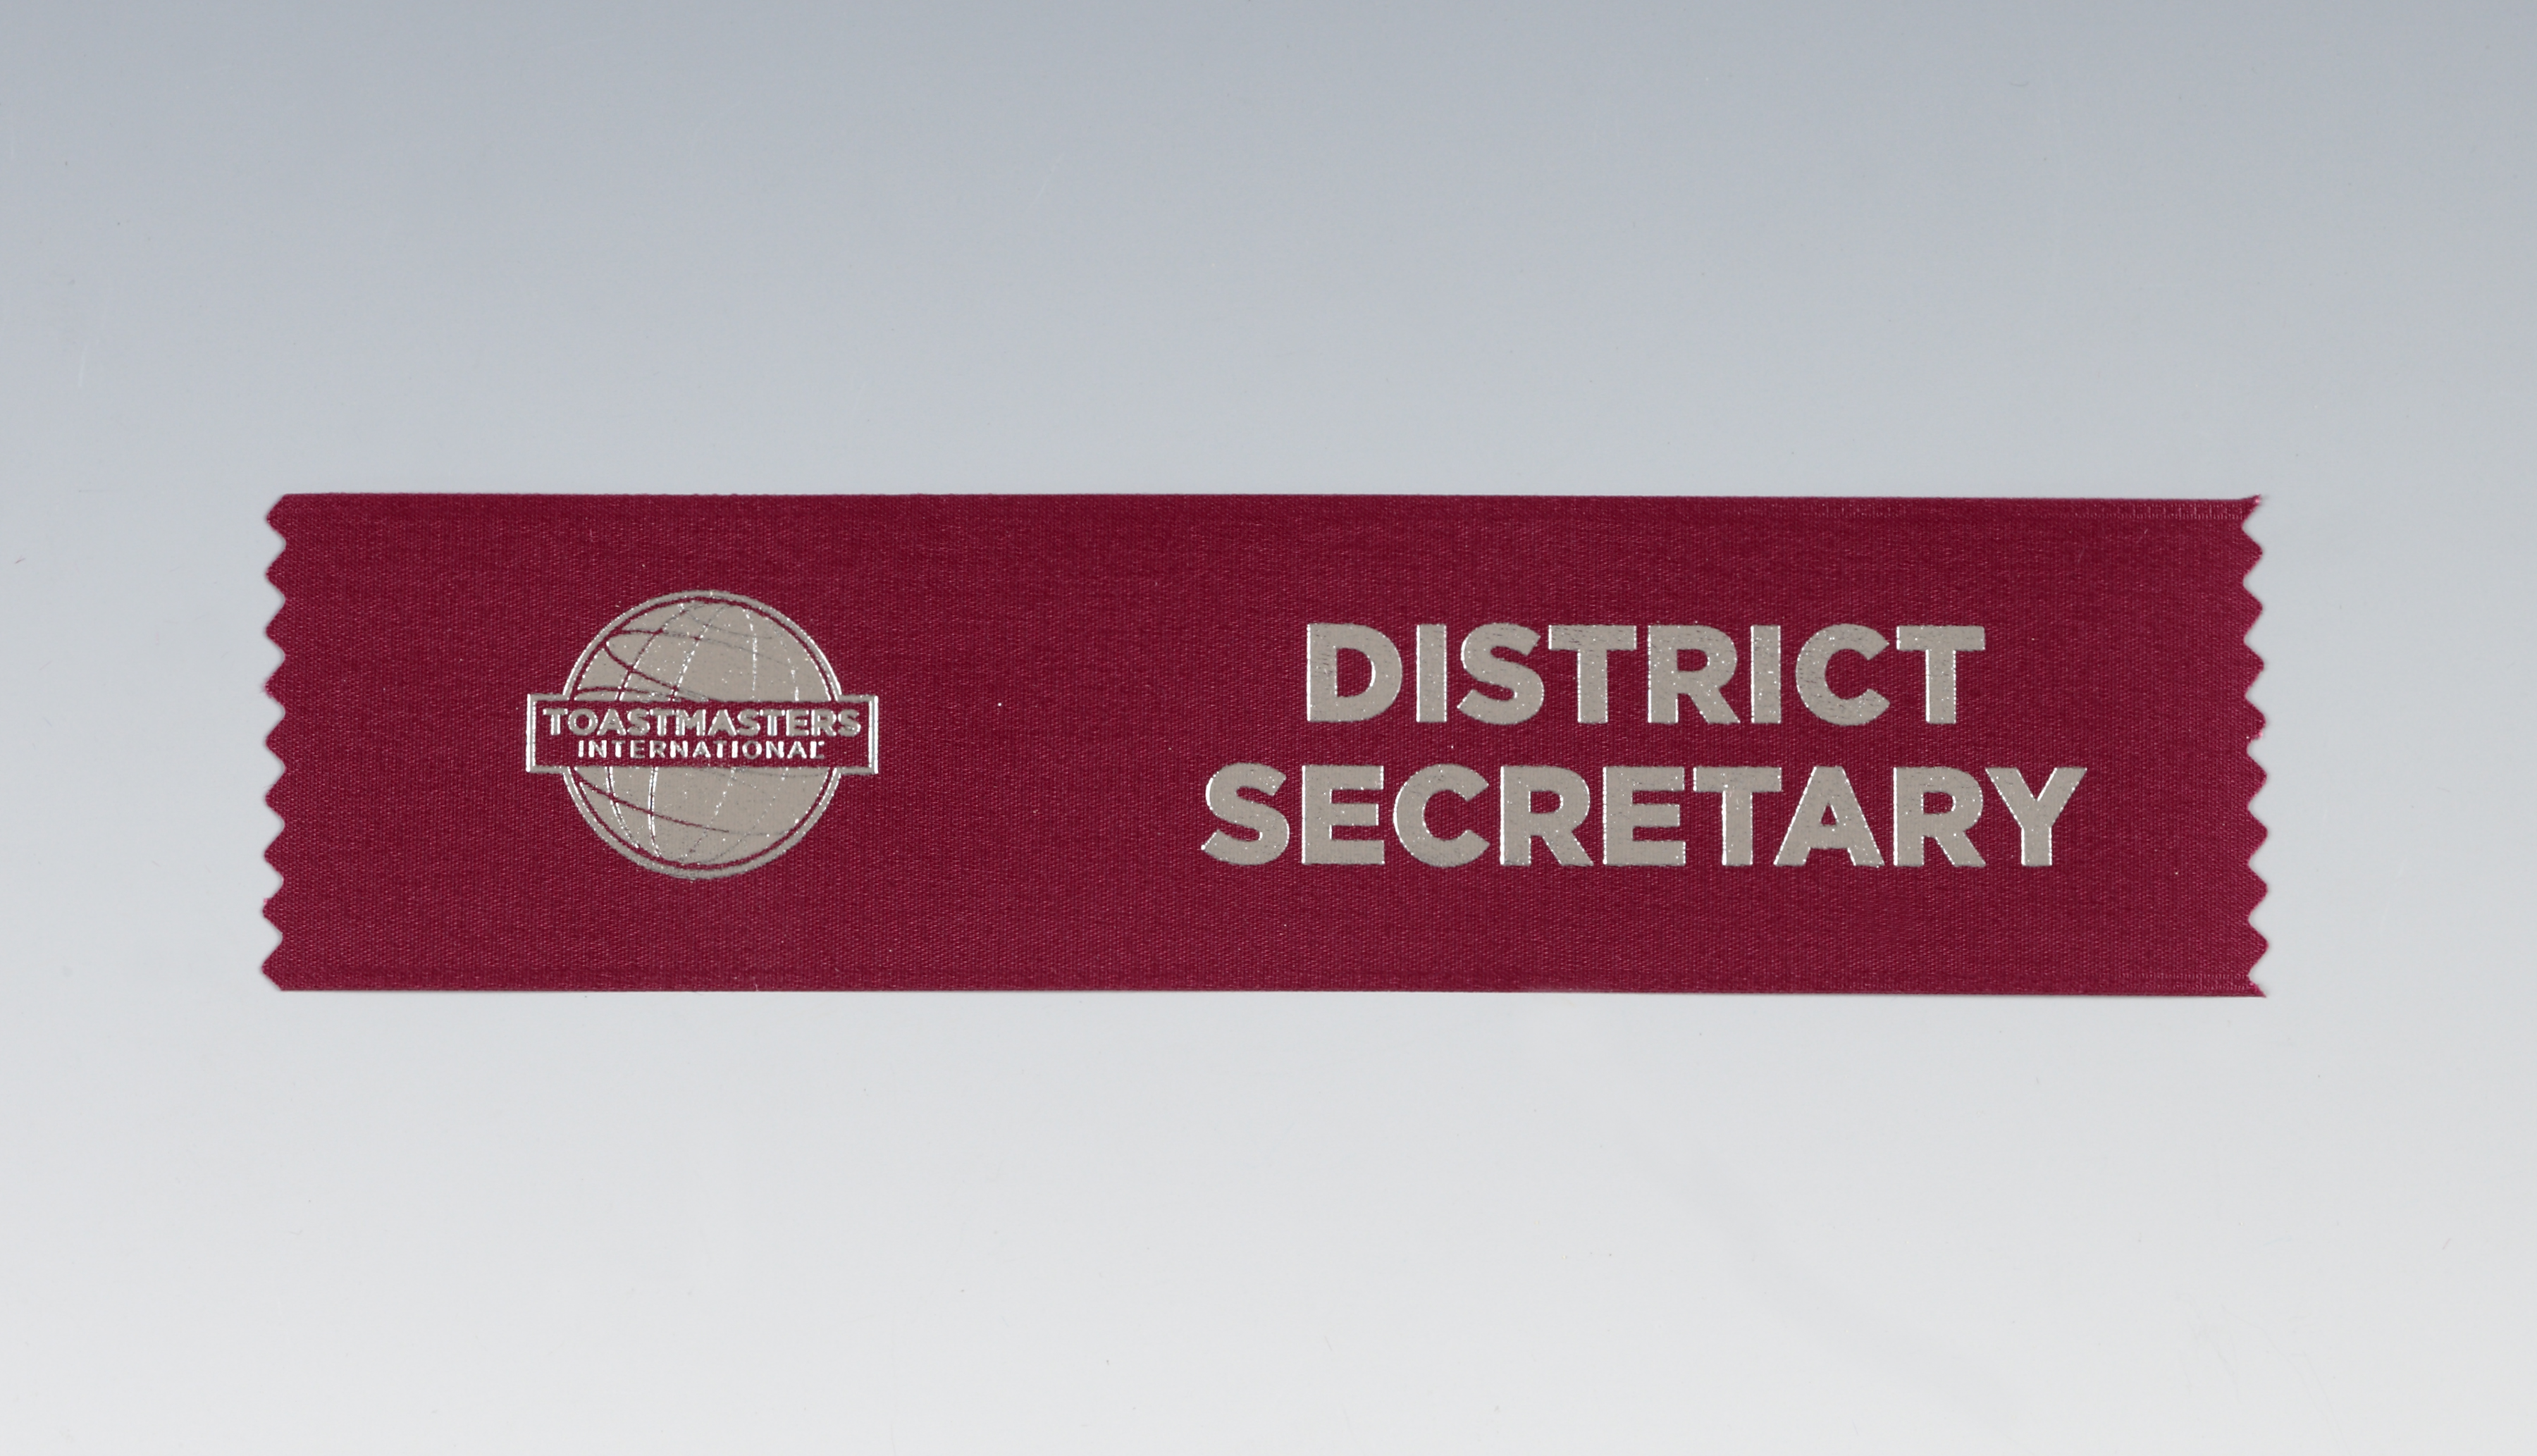 District Secretary Ribbon